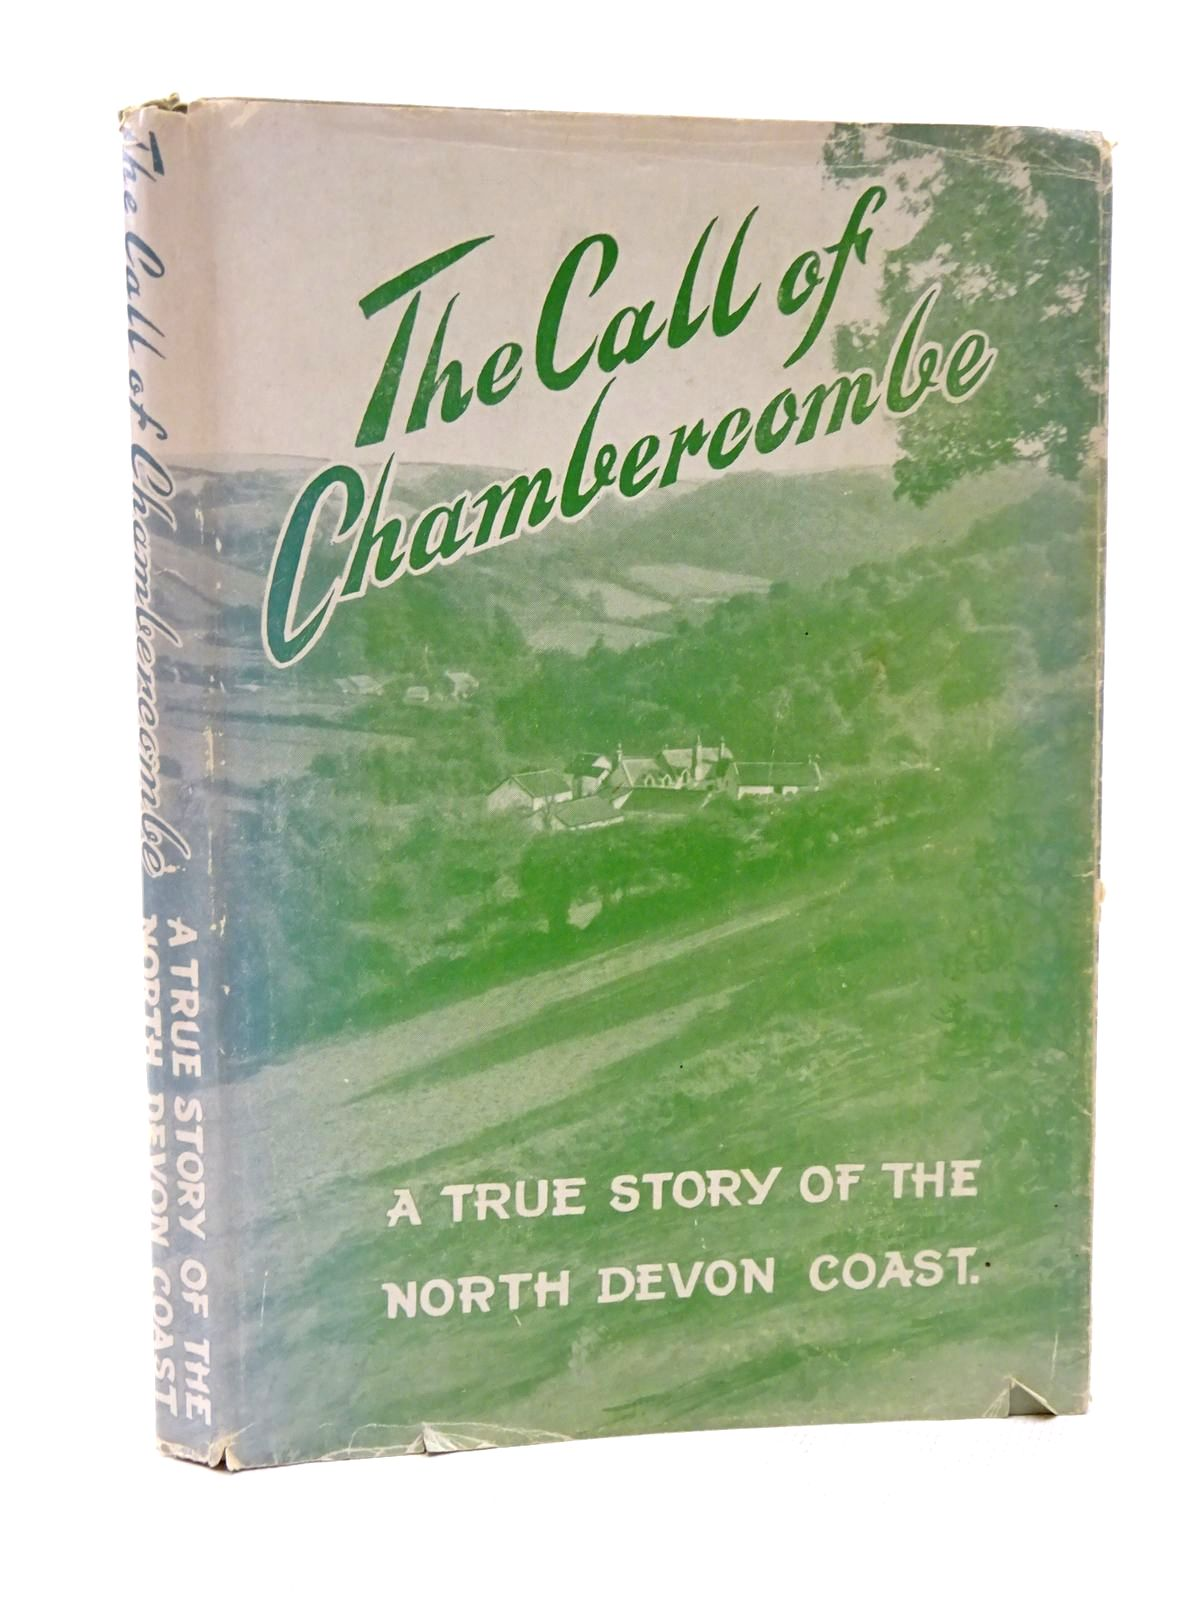 Photo of THE CALL OF CHAMBERCOMBE published by The Chronicle Press(Ilfracombe) Ltd. (STOCK CODE: 1815595)  for sale by Stella & Rose's Books